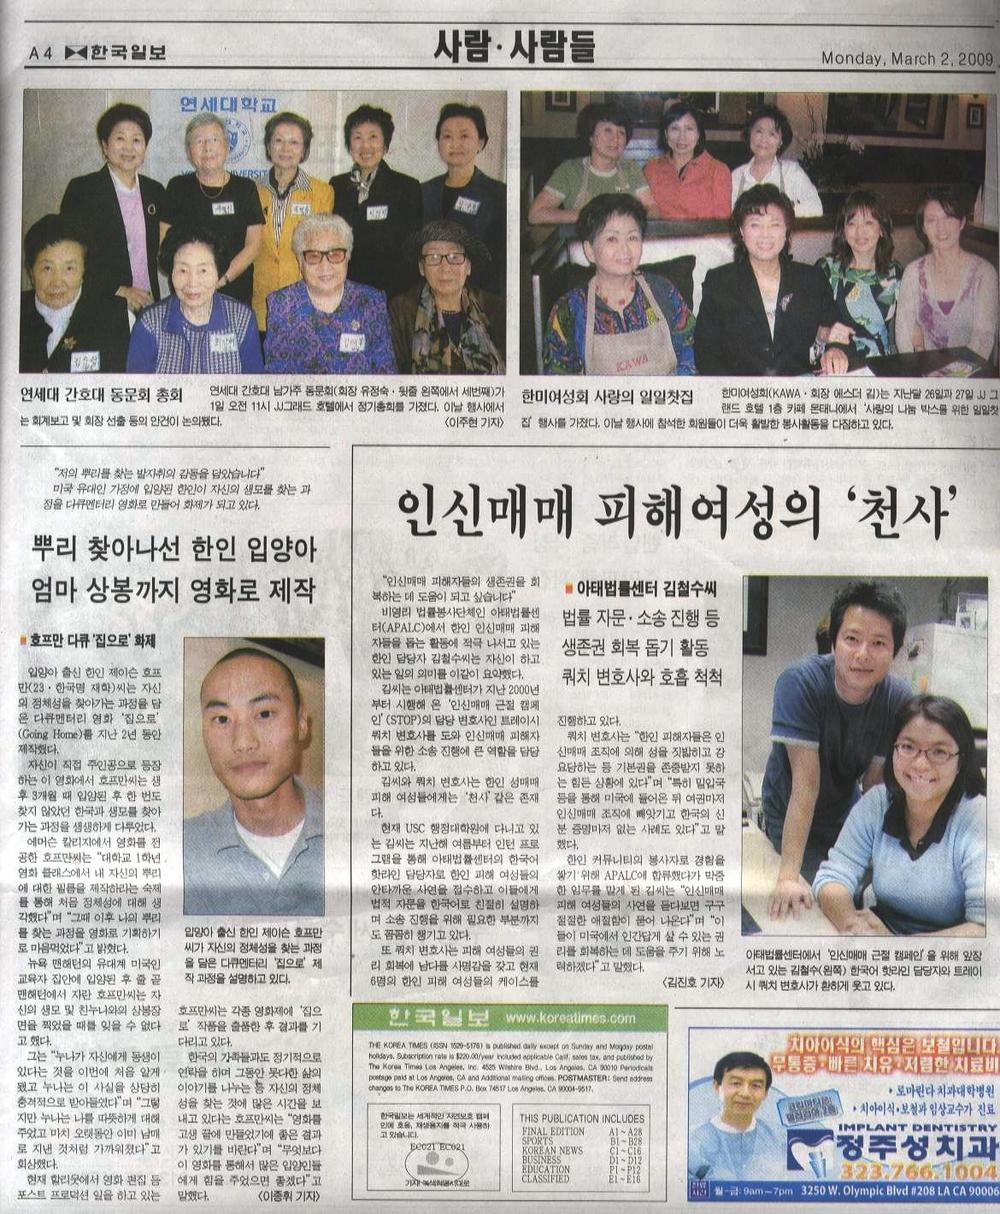 The Korea Times  - March 2nd, 2009.